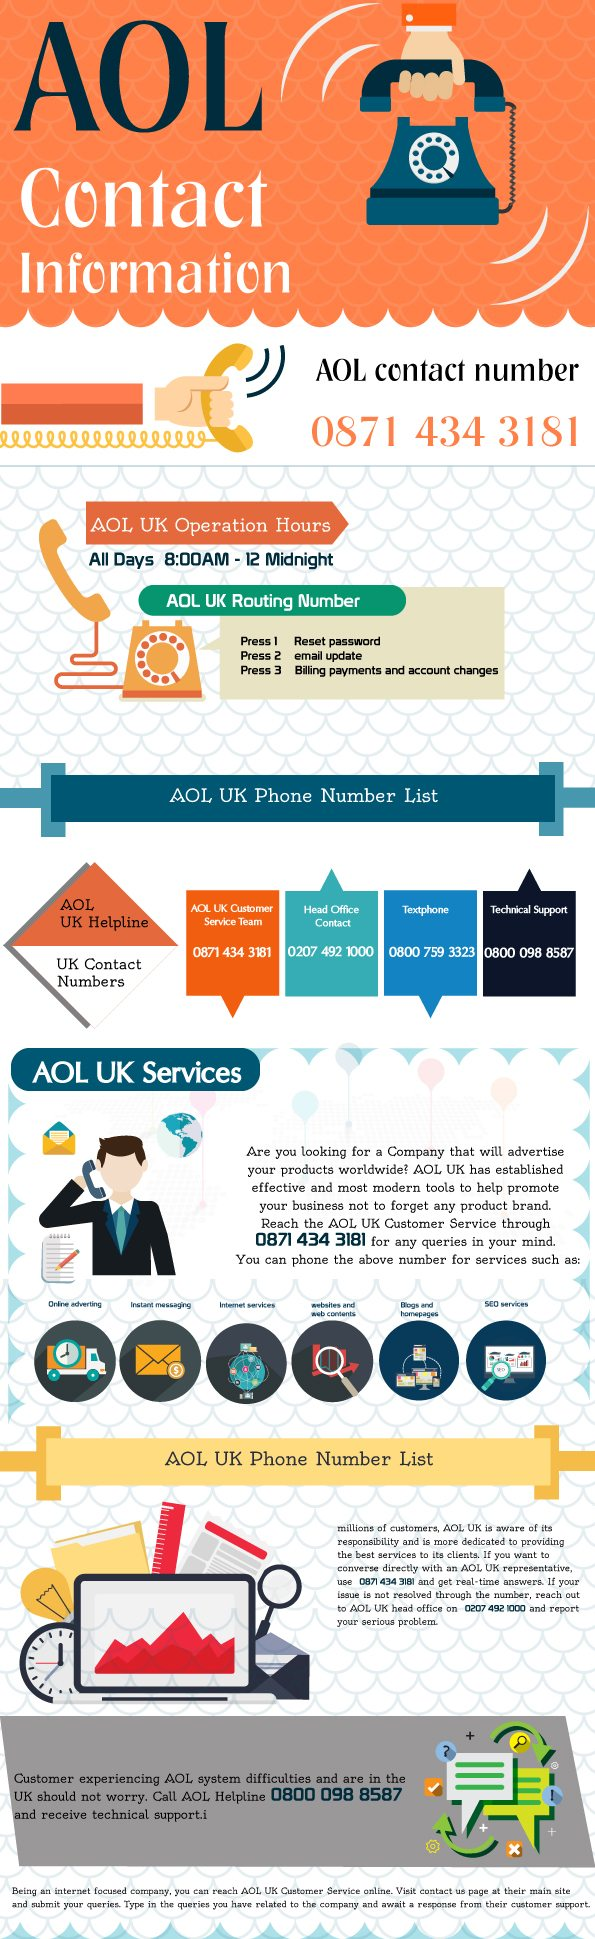 AOL Contact Number